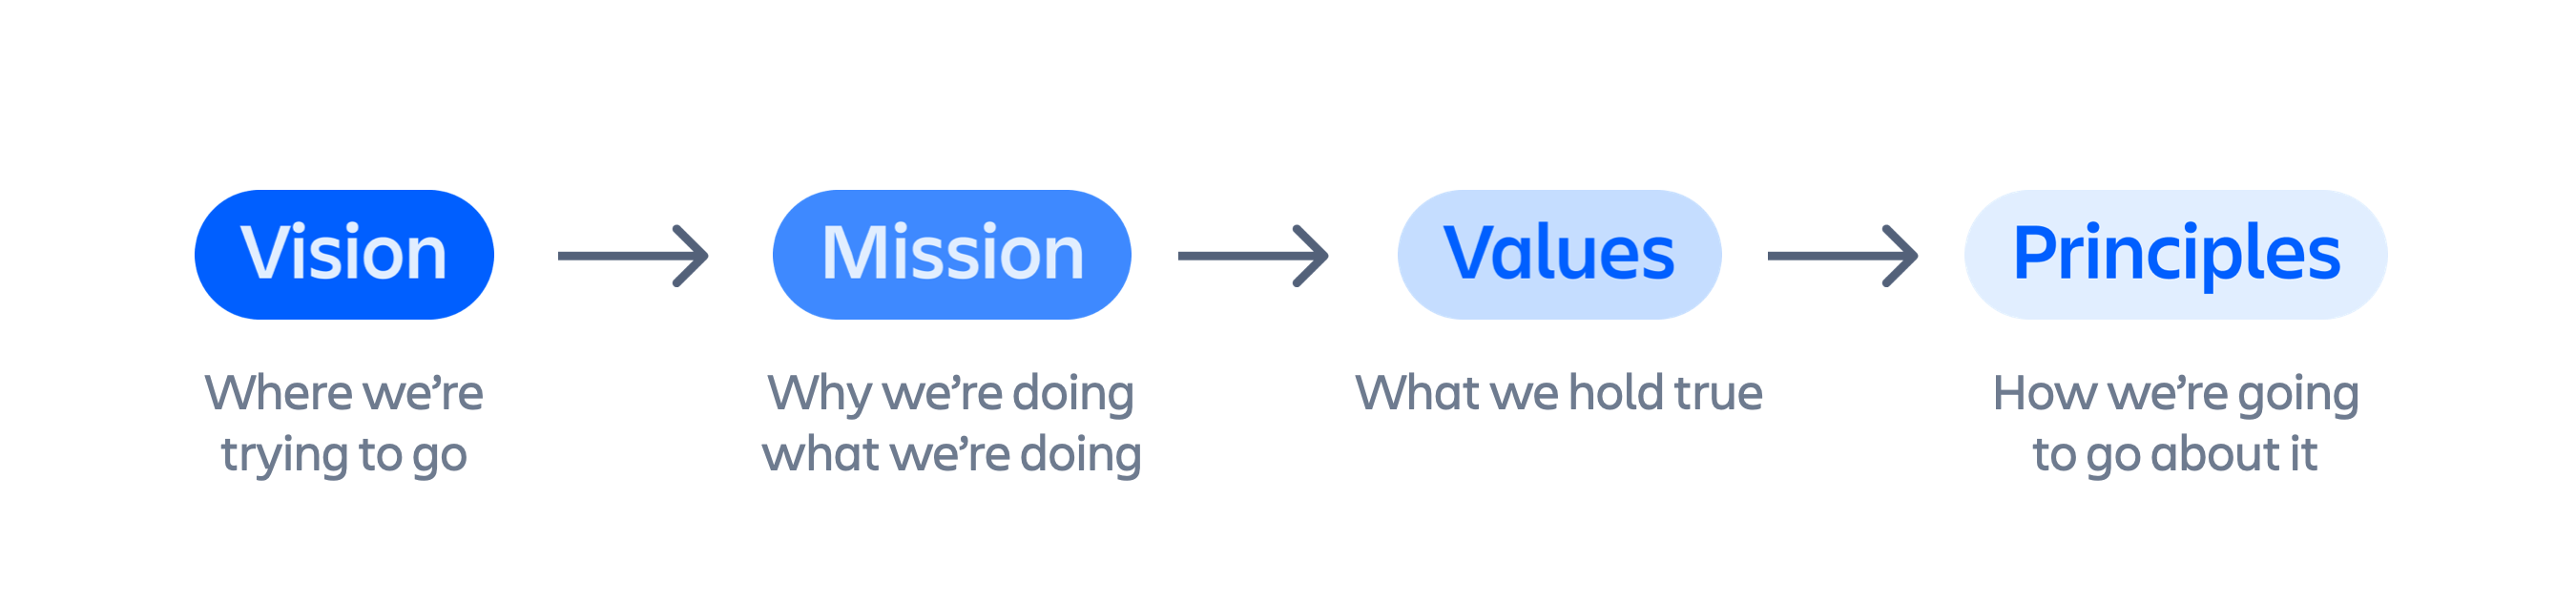 Defining what values and principles mean to us